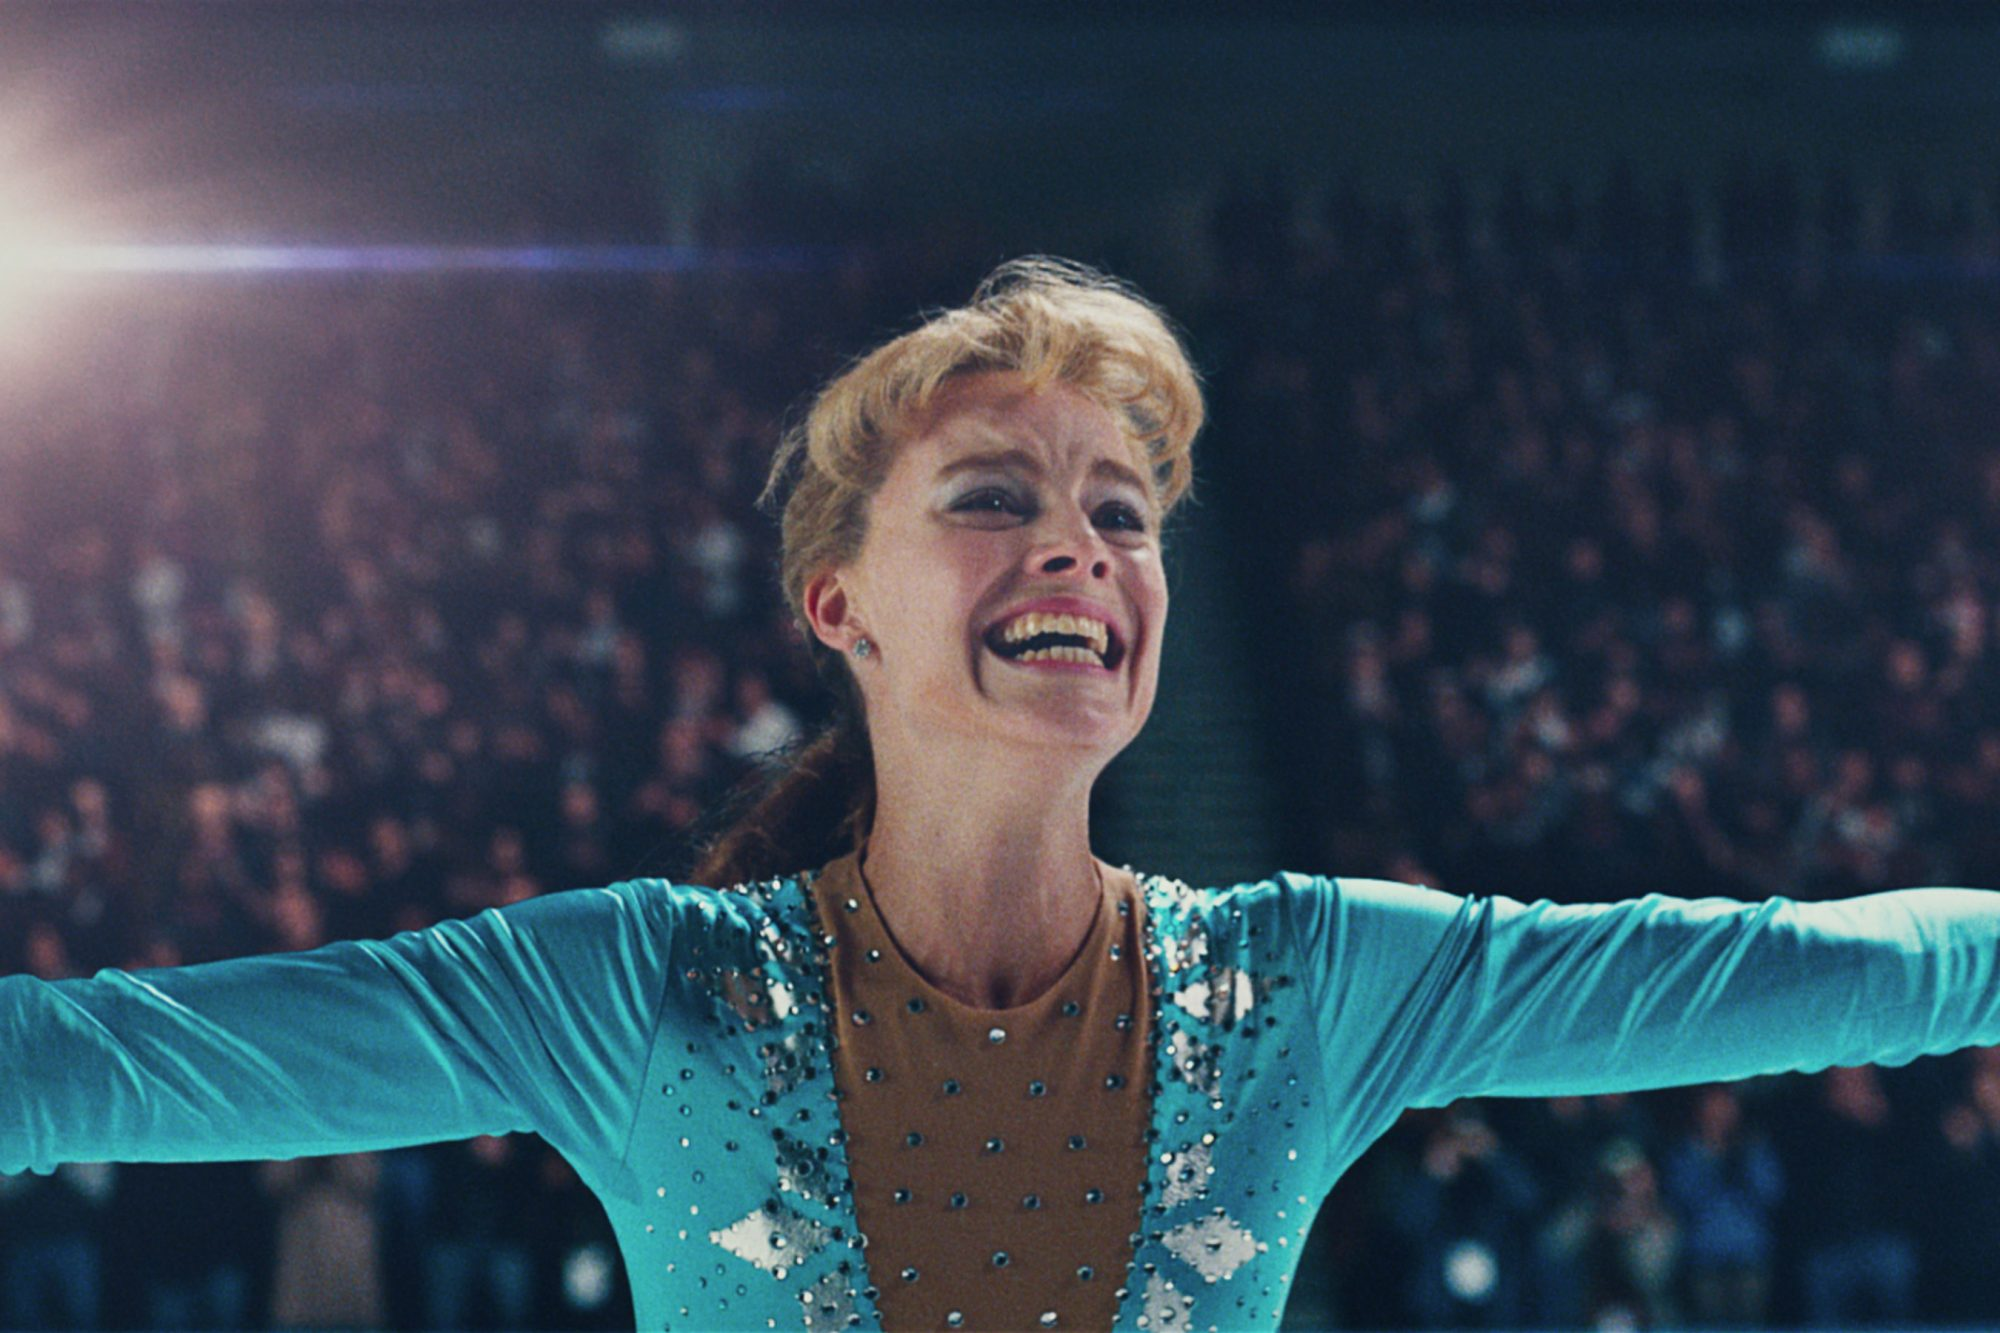 Tonya-Harding-(Margot-Robbie)-after-landing-the-triple-axel